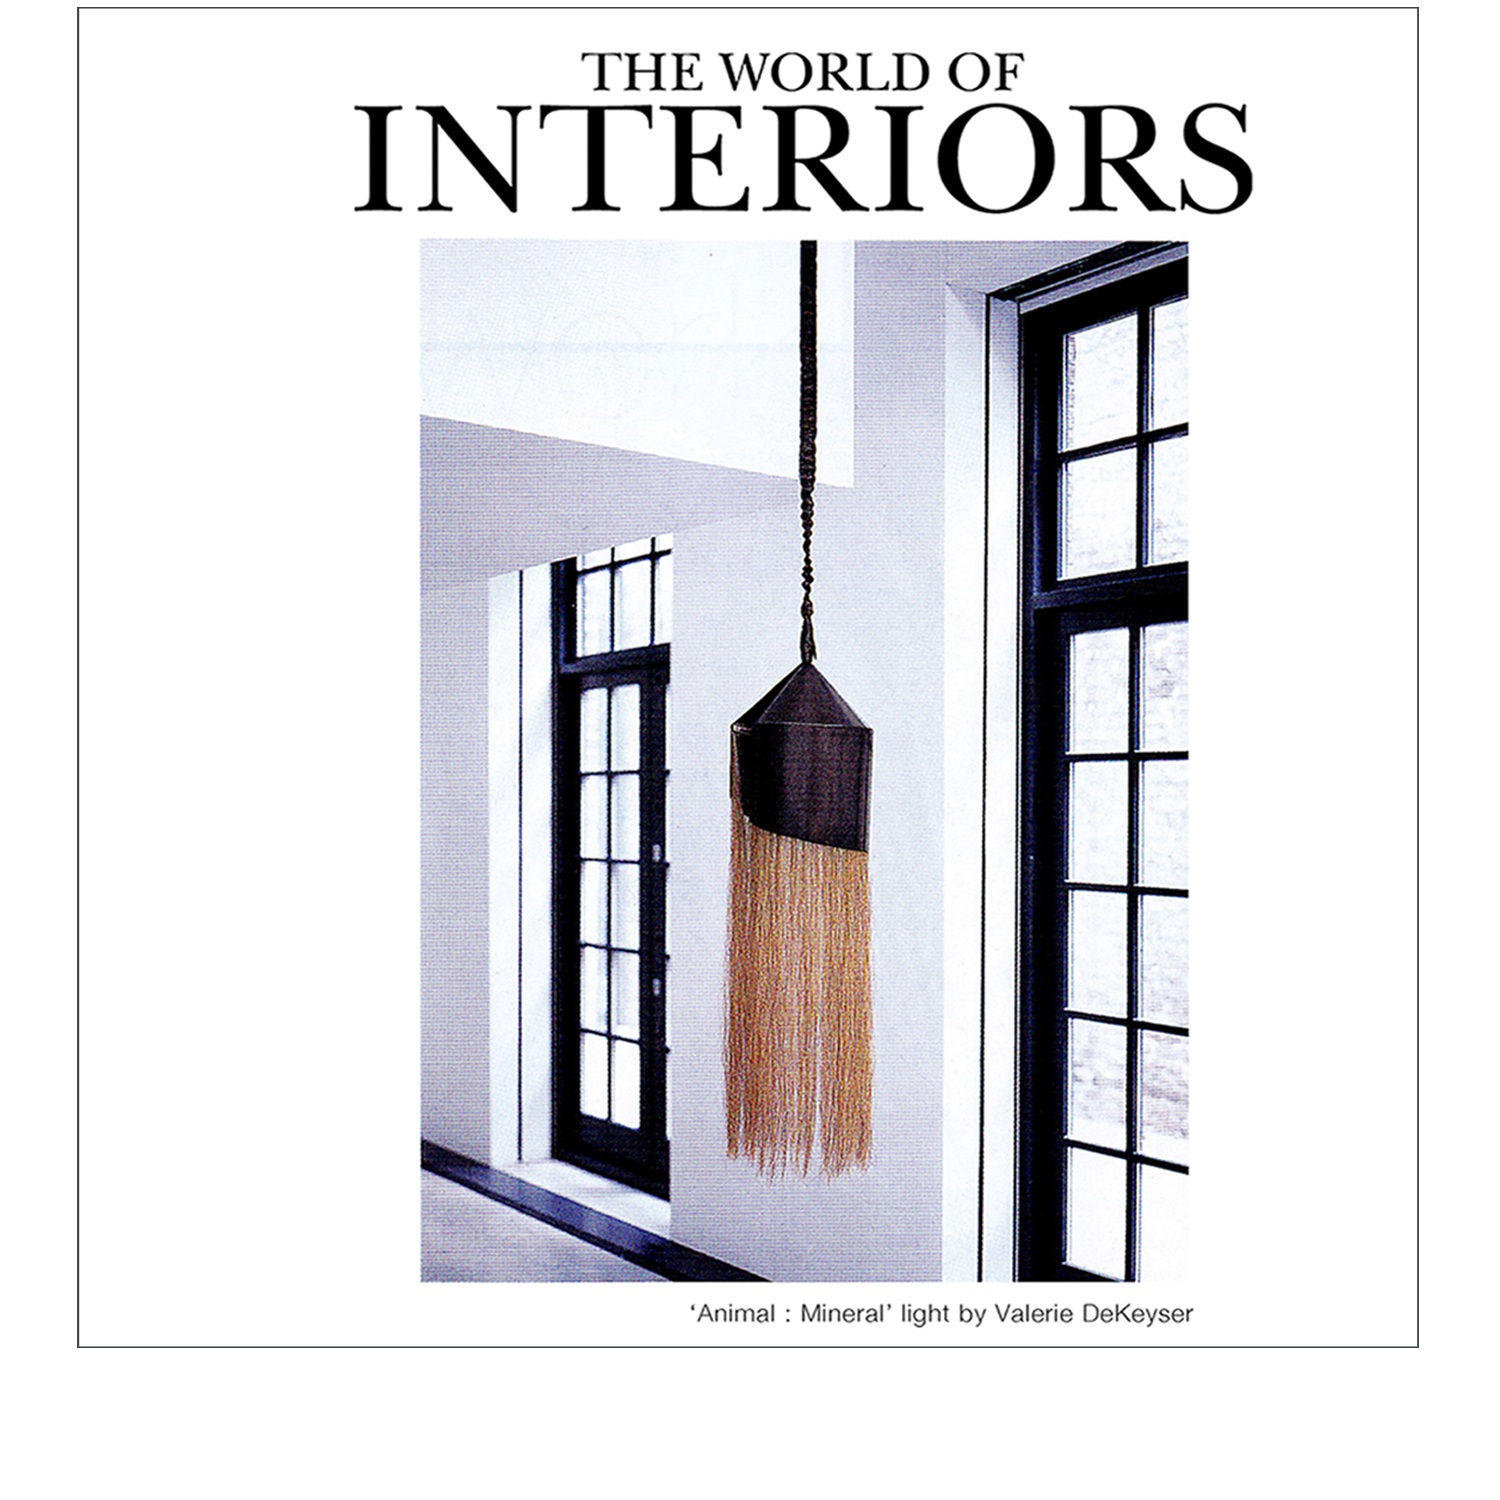 press-world-of-interiors.jpg